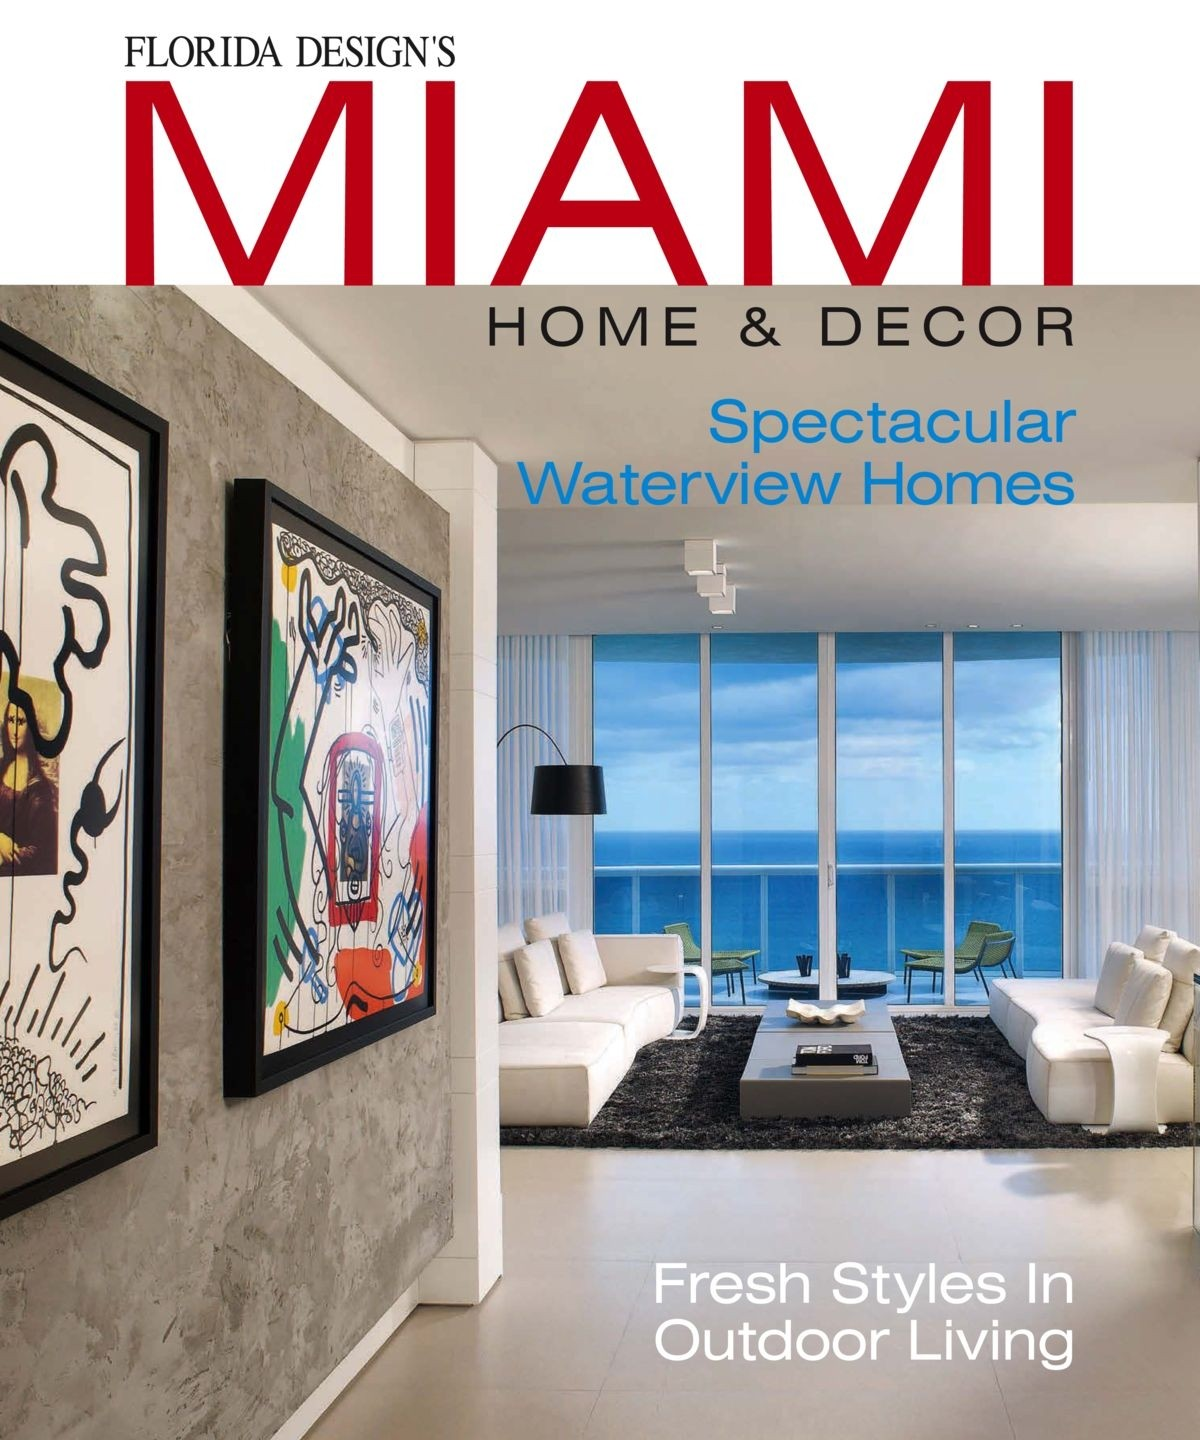 Home Decorating Magazine Subscriptions: Miami Home & Decor (USA) Magazine Subscription